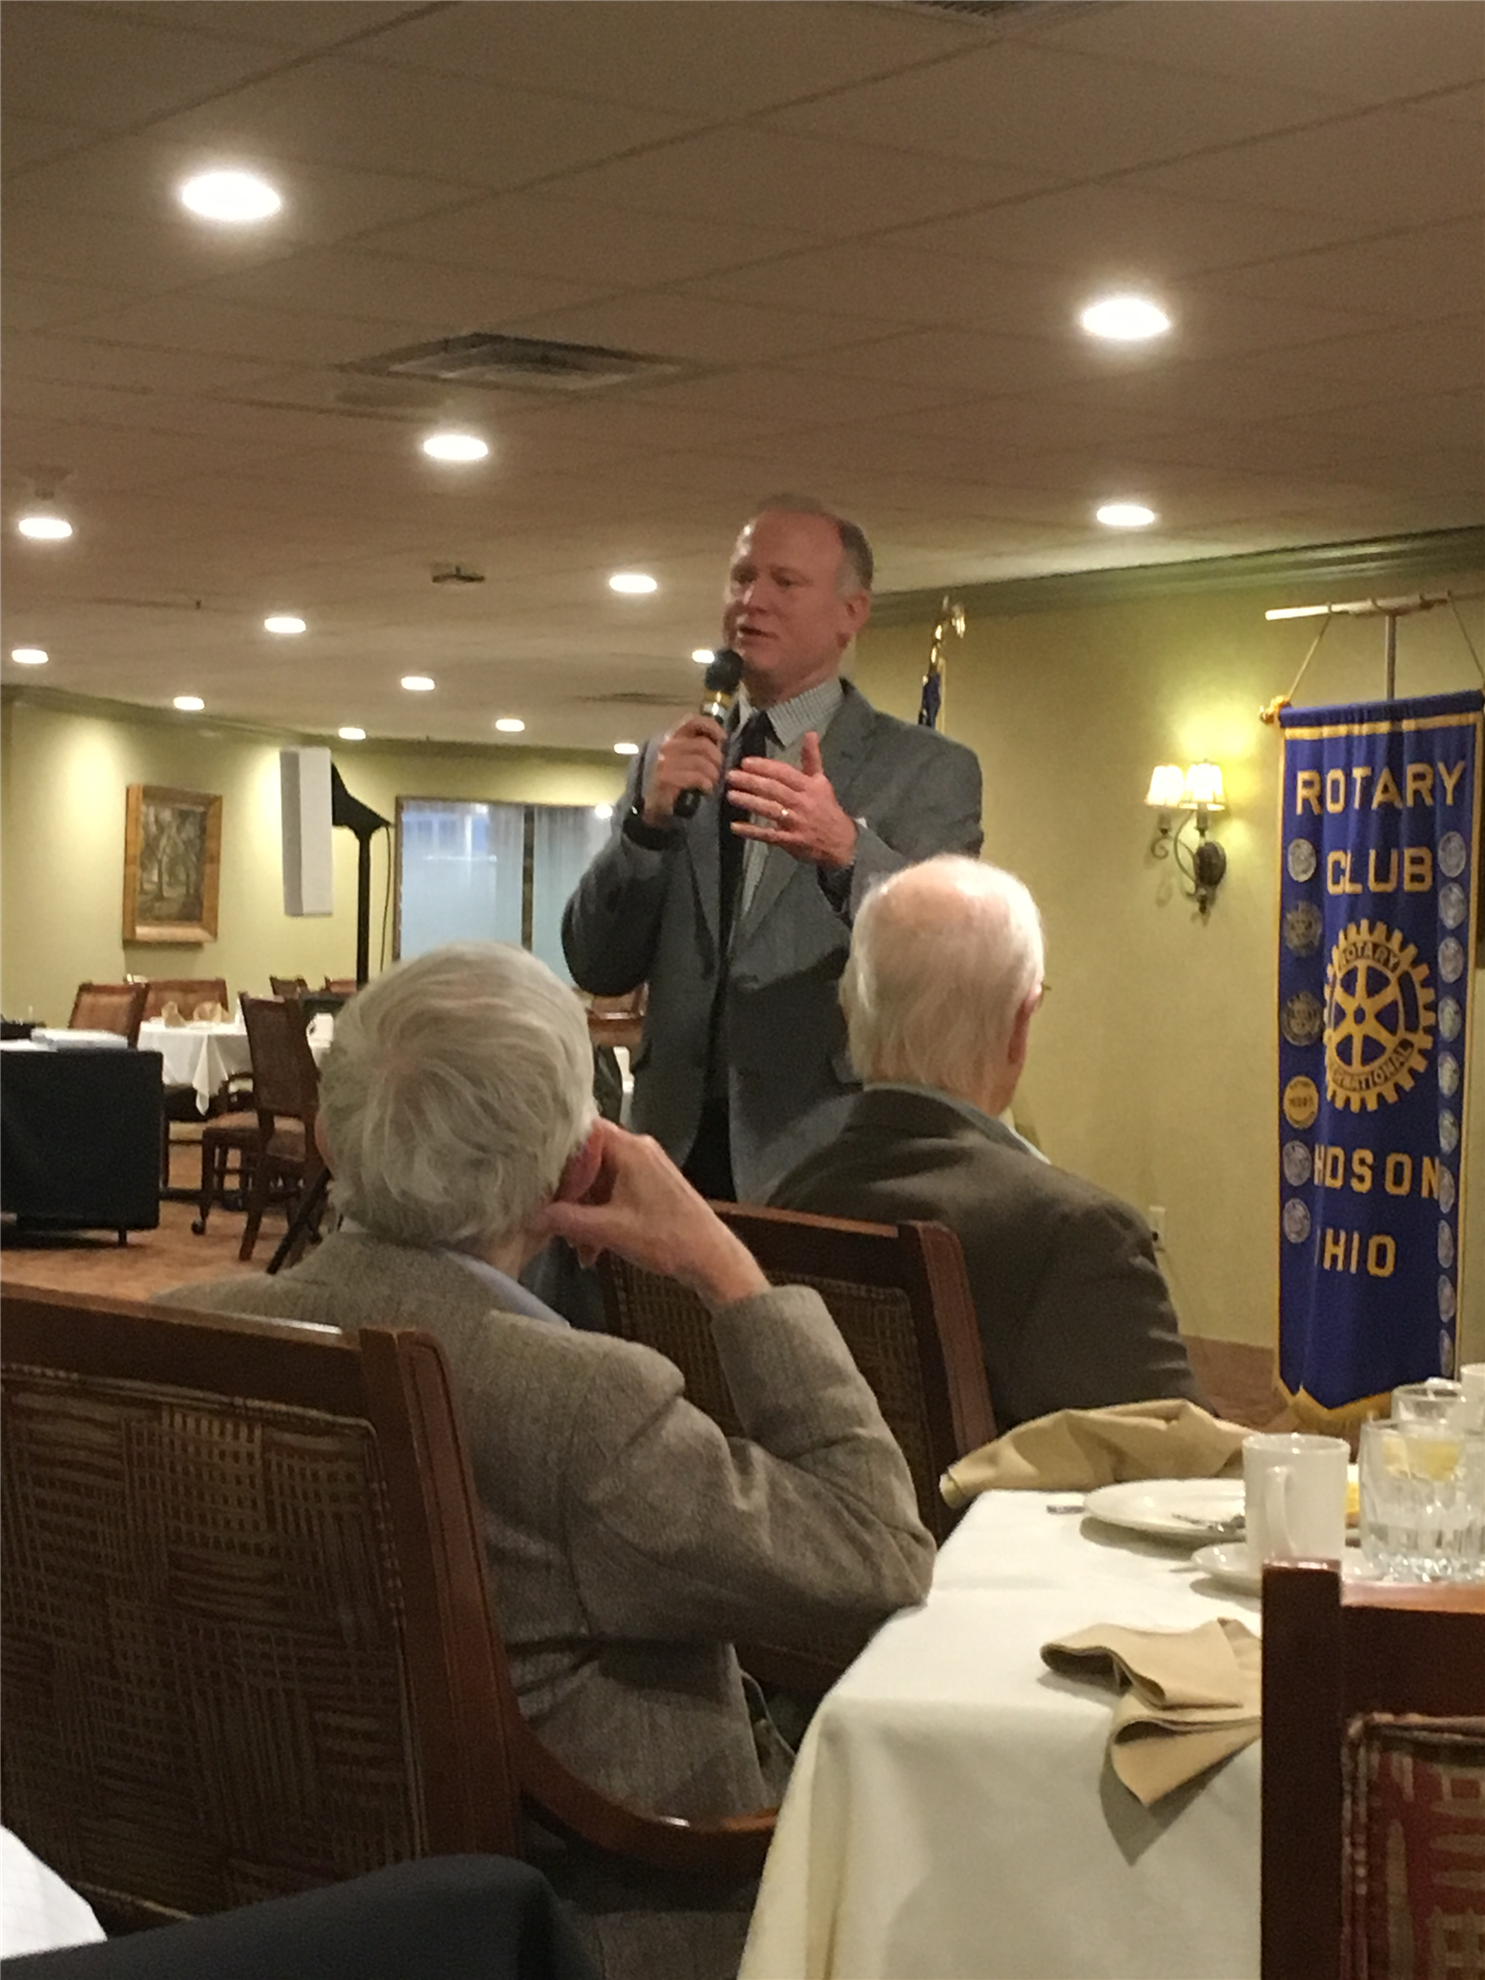 Stories | The Rotary Club of Hudson